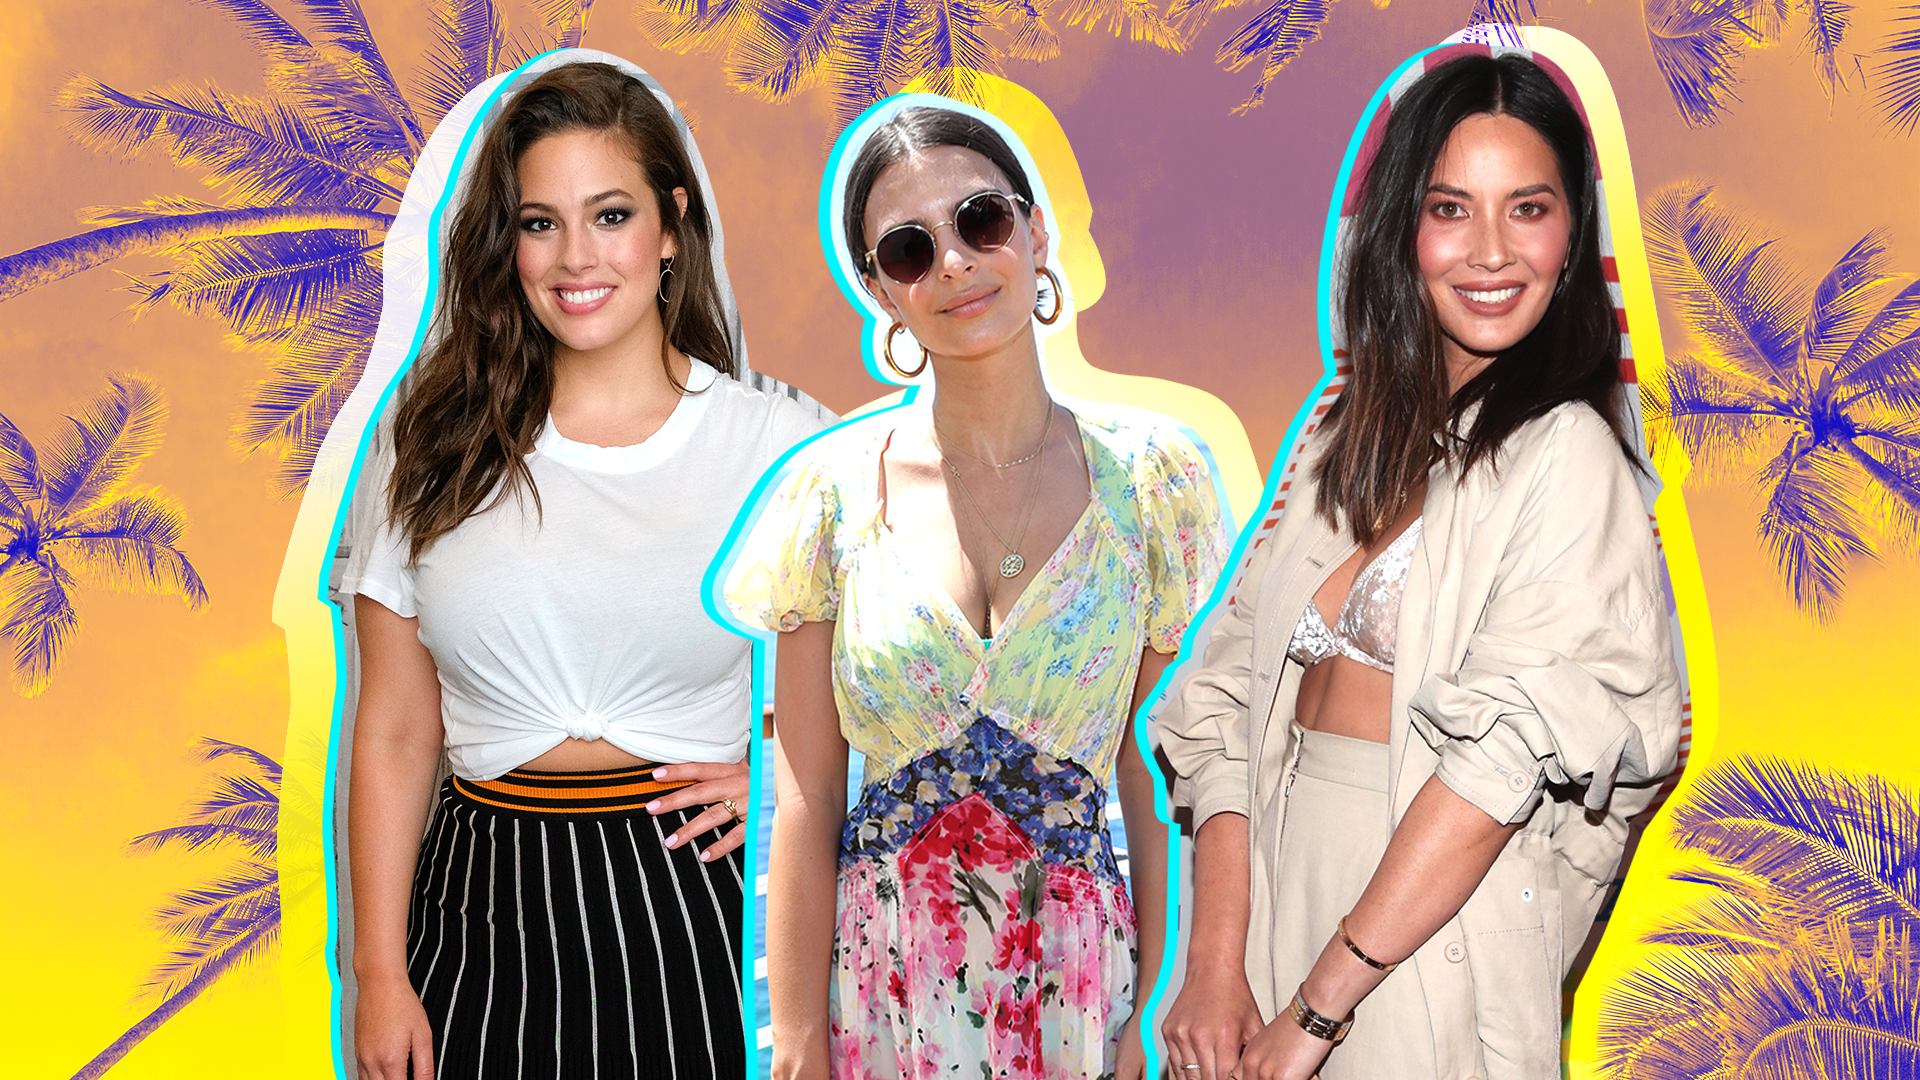 The Top 20 Celebrities to Follow for Ultra-Glam Travel Inspiration